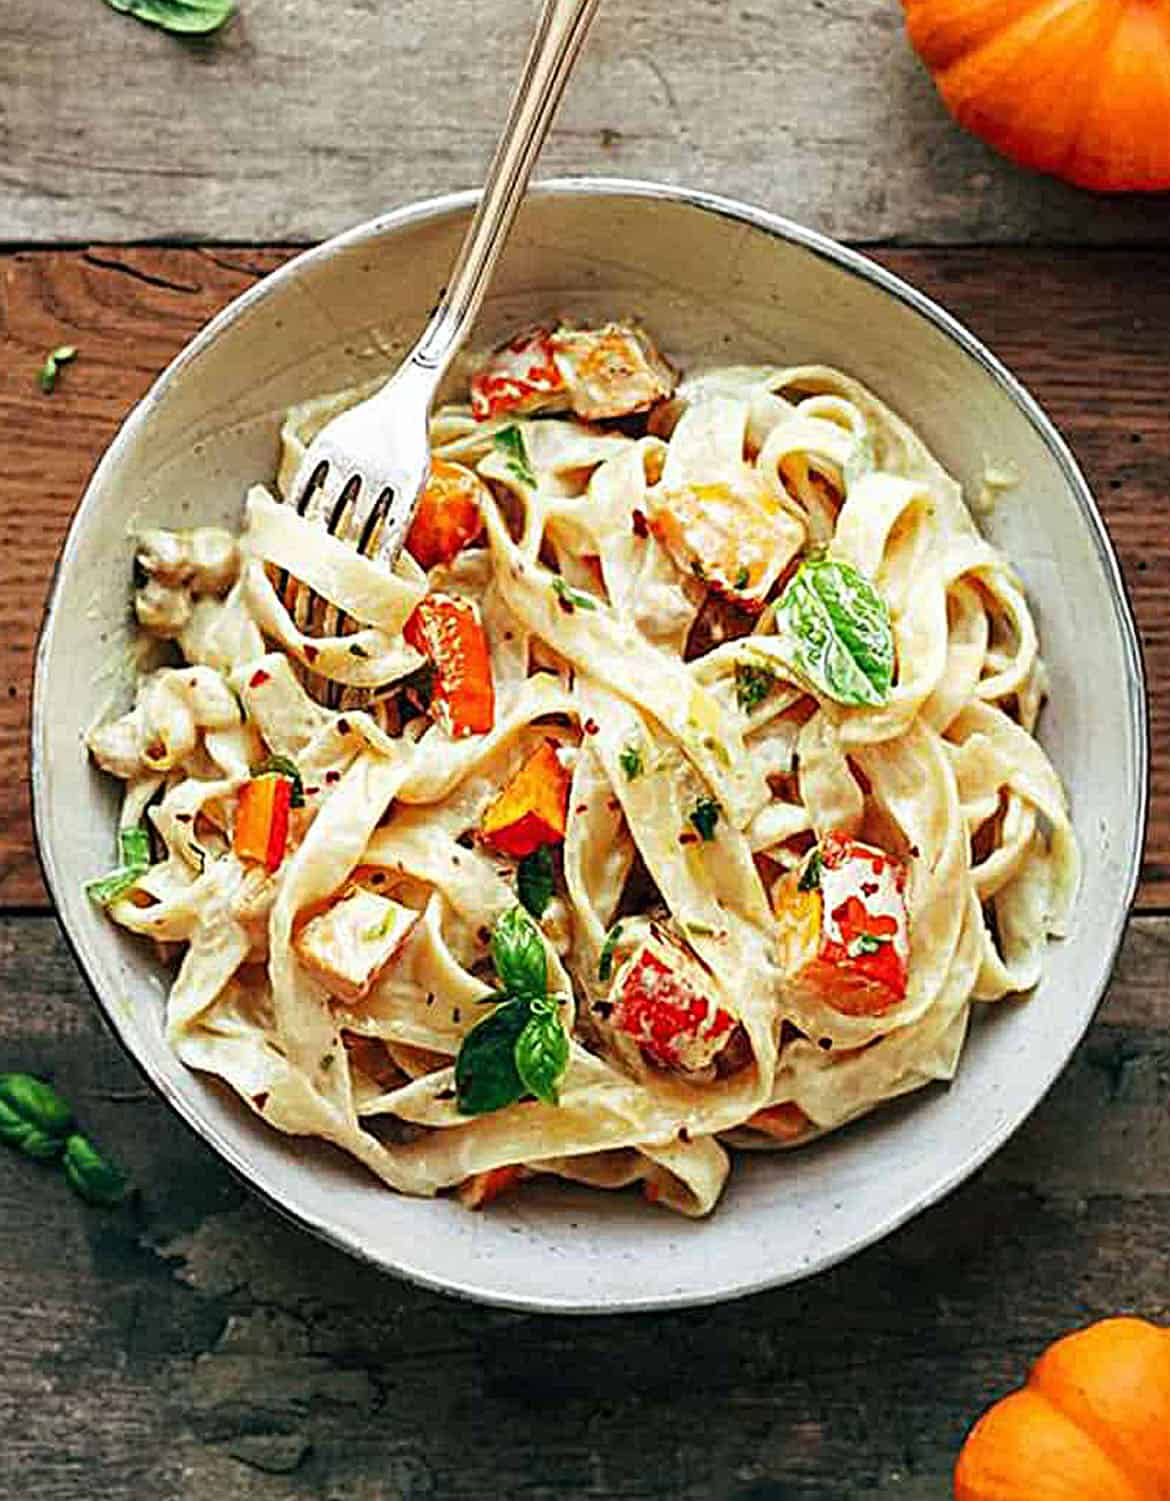 Pumpkin and chickpea pasta on light grey bowl with a fork - Full of Plants